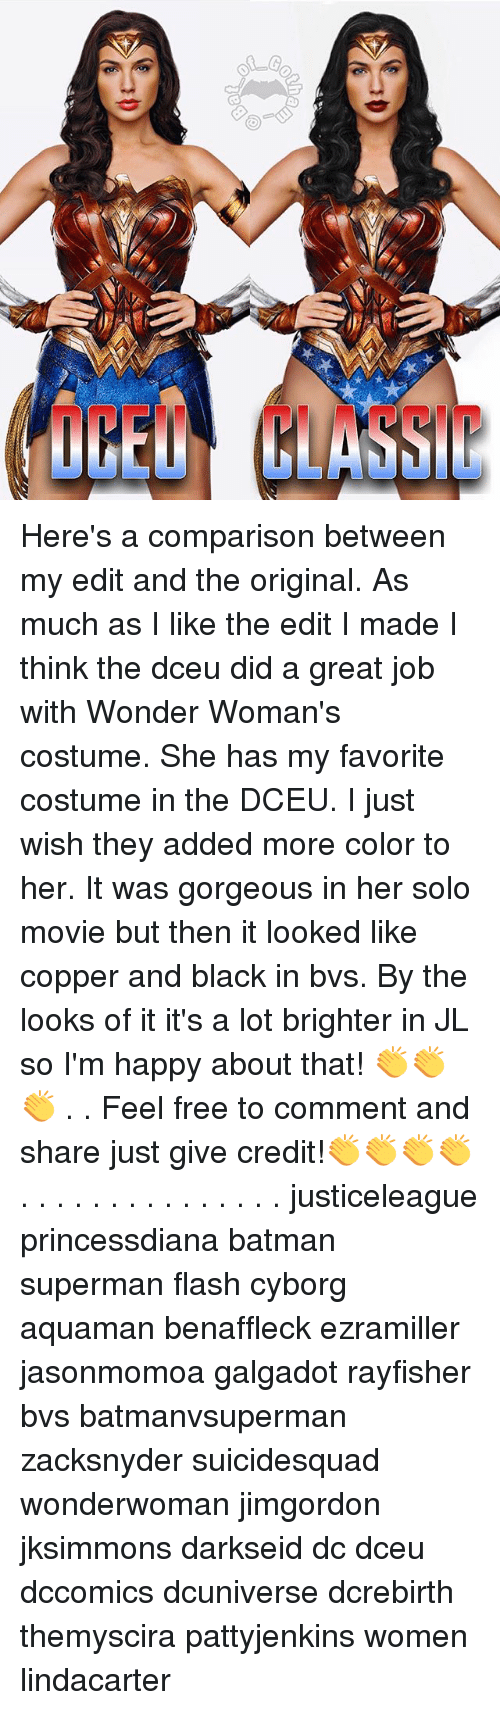 Feeling Free: Here's a comparison between my edit and the original. As much as I like the edit I made I think the dceu did a great job with Wonder Woman's costume. She has my favorite costume in the DCEU. I just wish they added more color to her. It was gorgeous in her solo movie but then it looked like copper and black in bvs. By the looks of it it's a lot brighter in JL so I'm happy about that! 👏👏👏 . . Feel free to comment and share just give credit!👏👏👏👏 . . . . . . . . . . . . . . . justiceleague princessdiana batman superman flash cyborg aquaman benaffleck ezramiller jasonmomoa galgadot rayfisher bvs batmanvsuperman zacksnyder suicidesquad wonderwoman jimgordon jksimmons darkseid dc dceu dccomics dcuniverse dcrebirth themyscira pattyjenkins women lindacarter